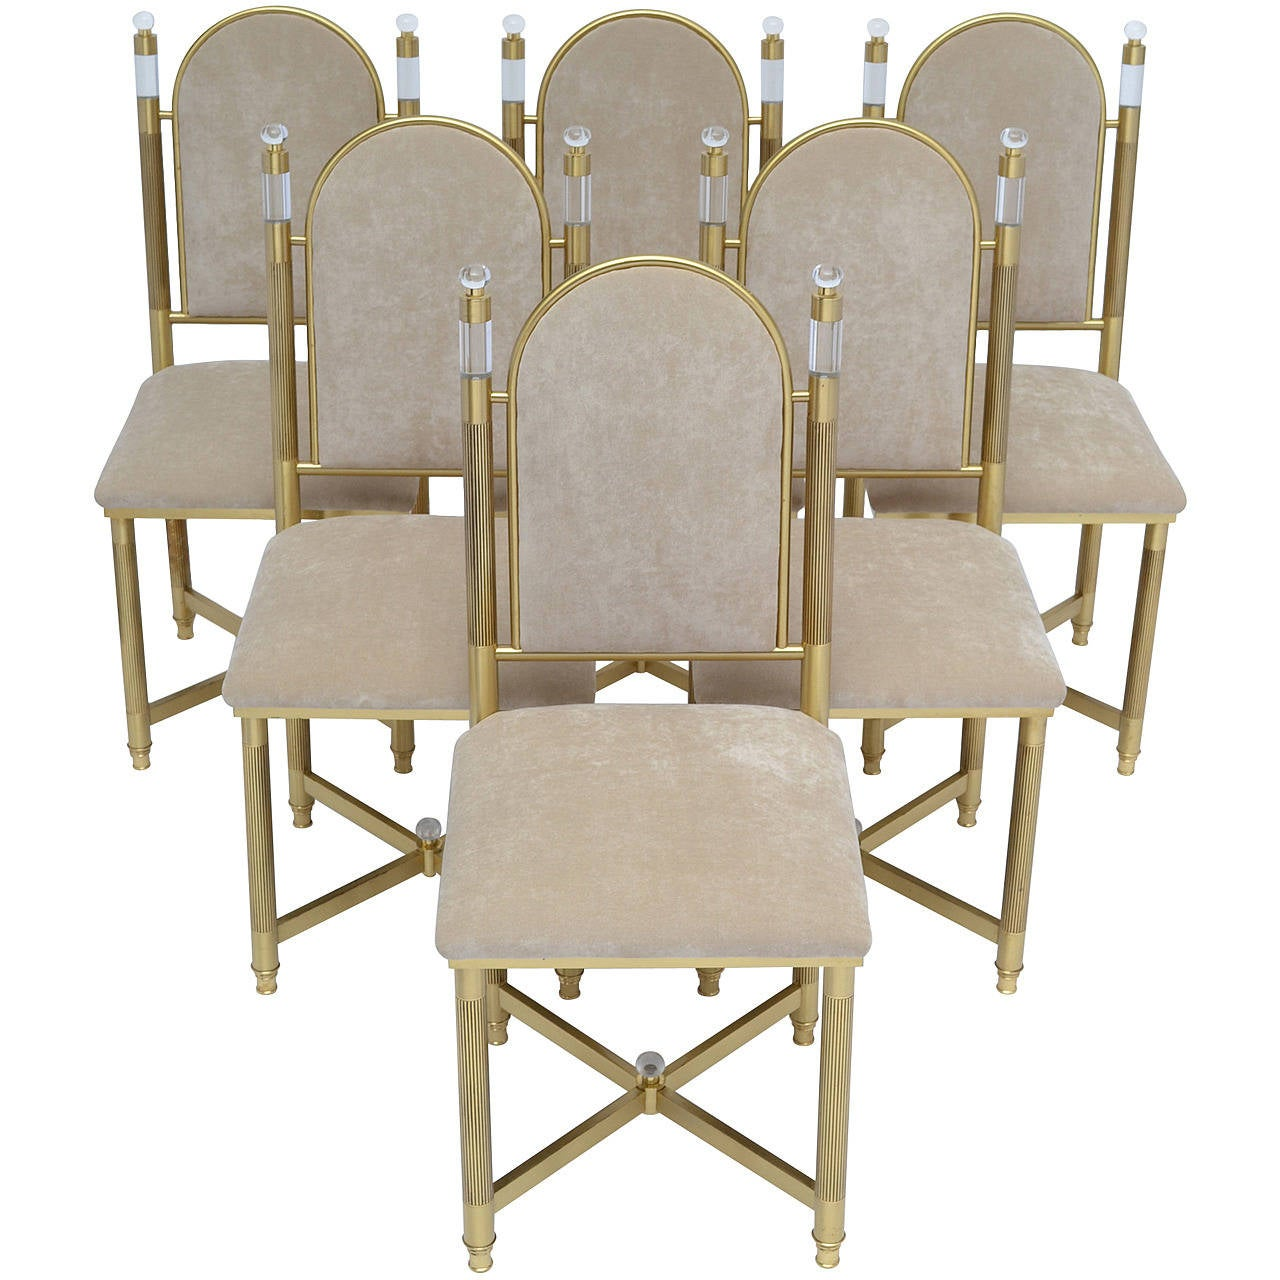 Maison Valenti Brass And Lucite Dining Chairs At 1stdibs